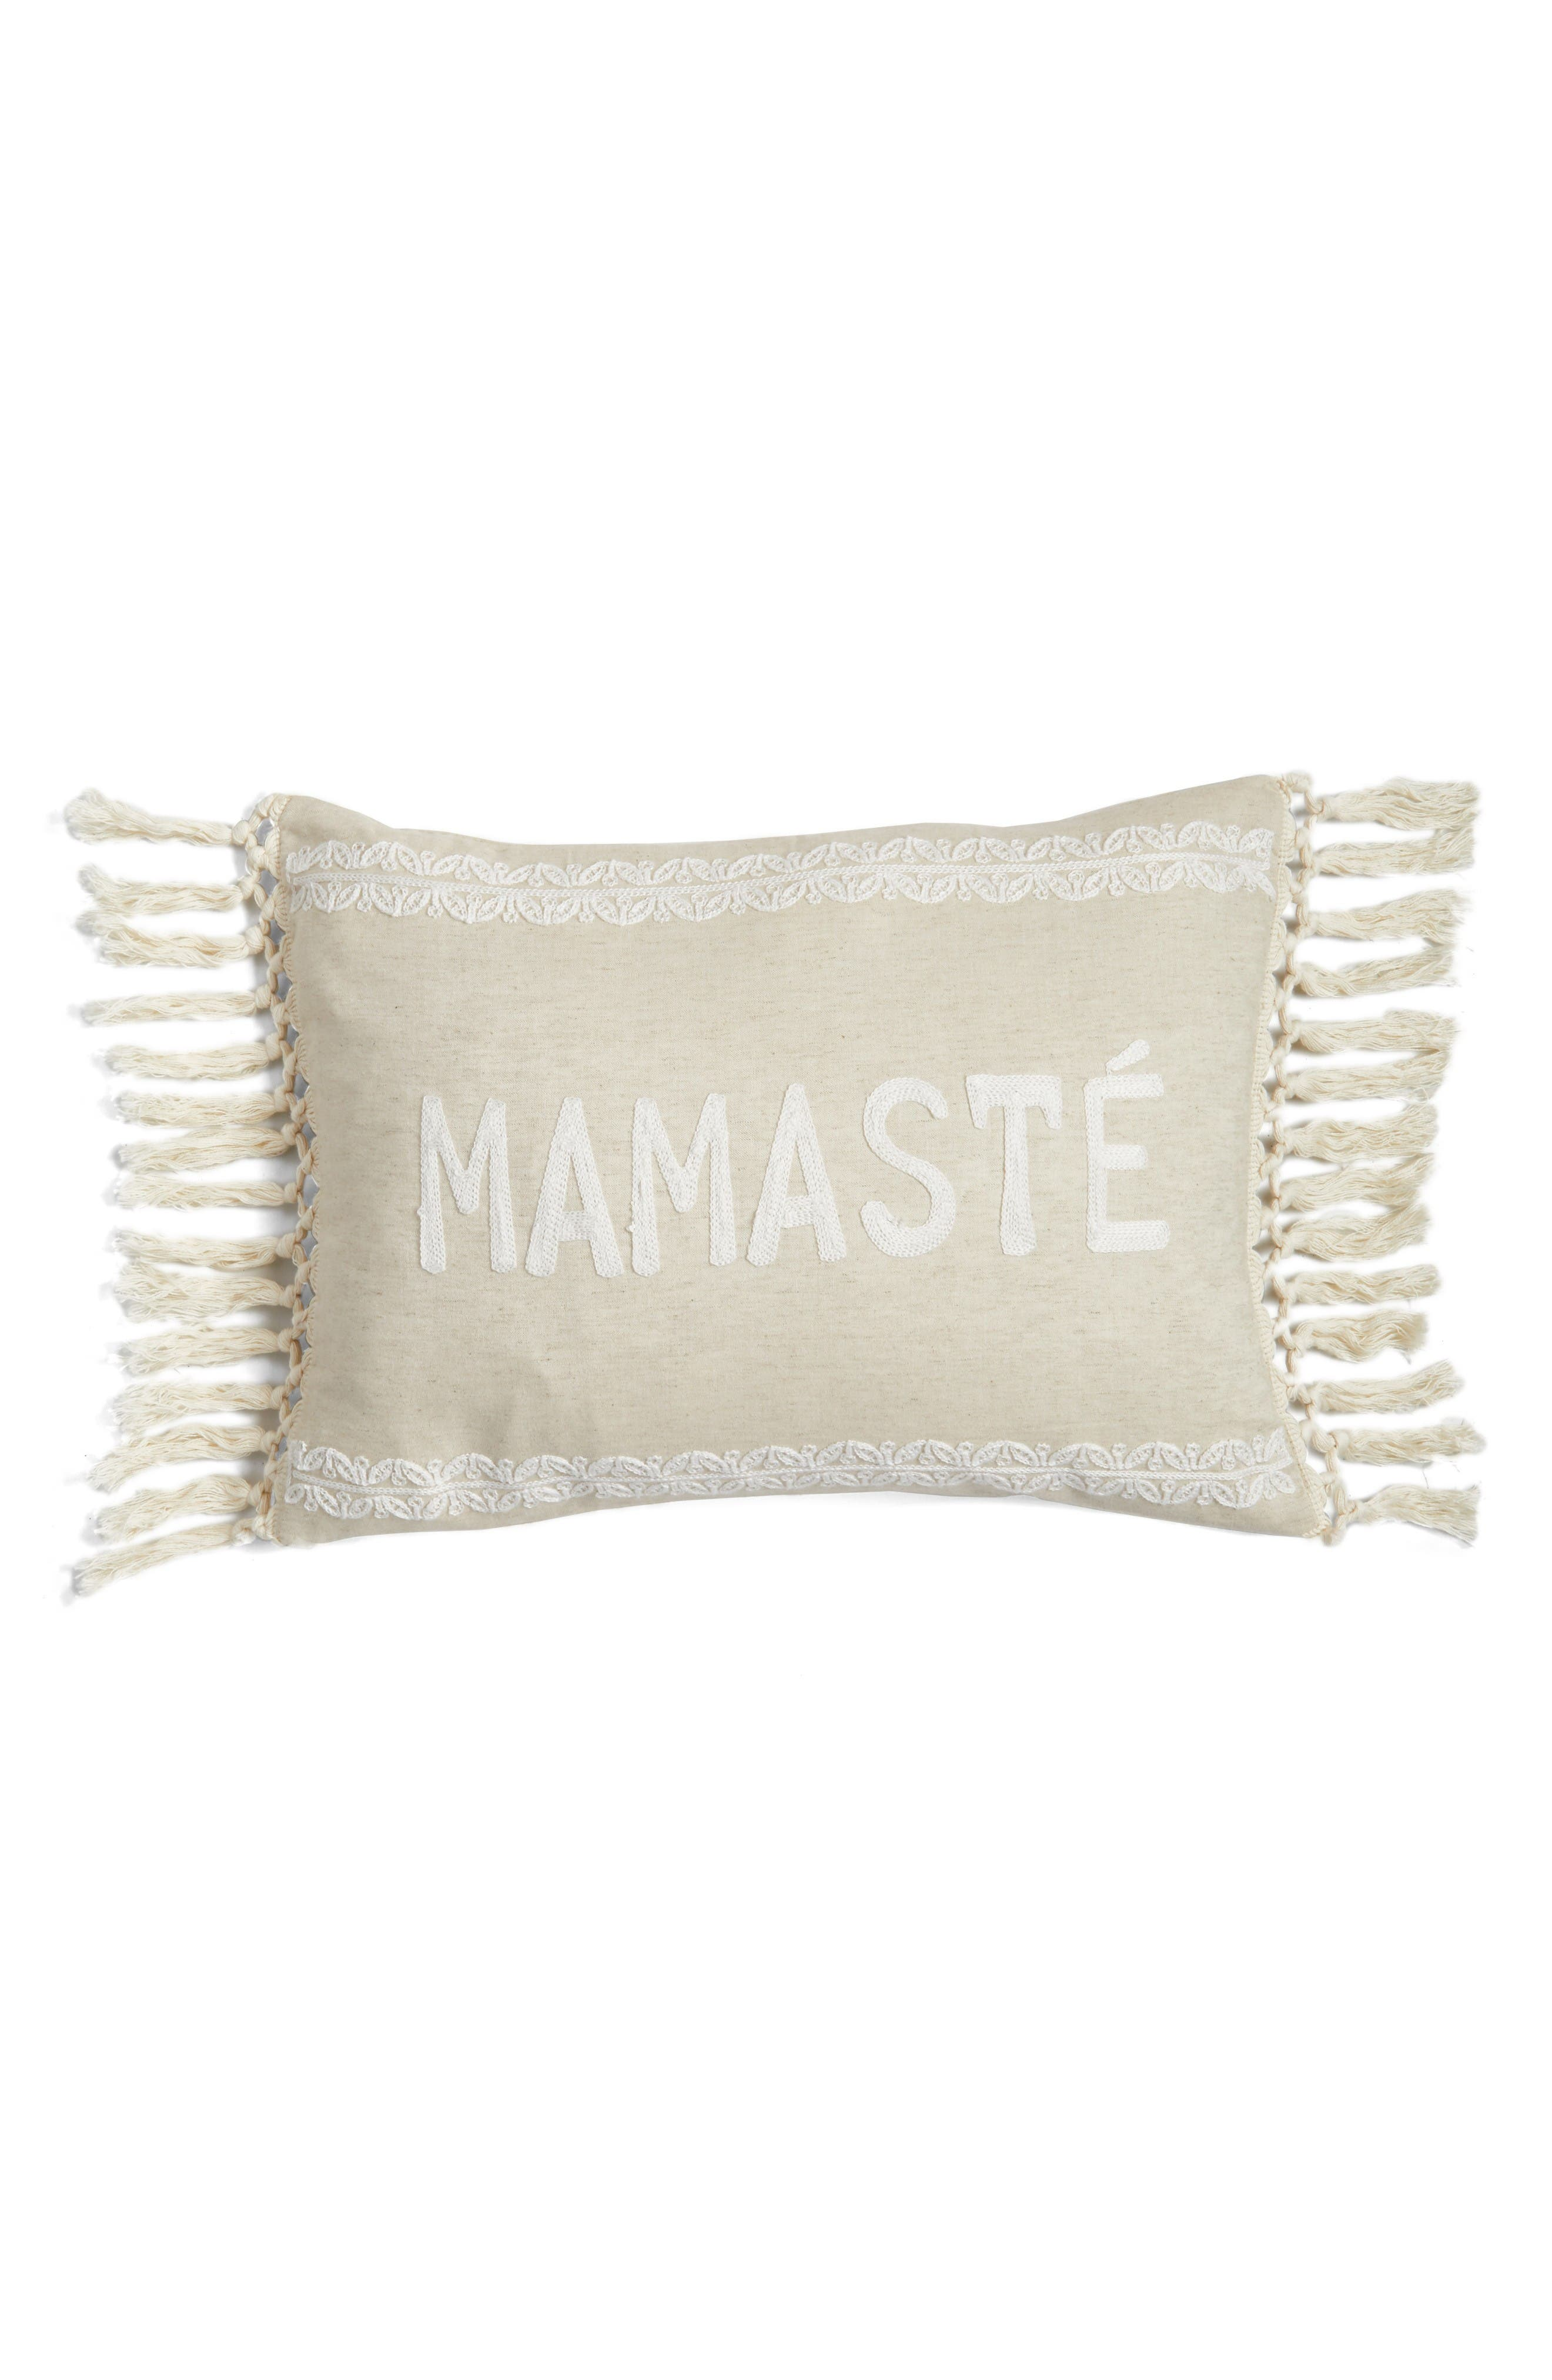 Alternate Image 1 Selected - Levtex Mamaste Accent Pillow